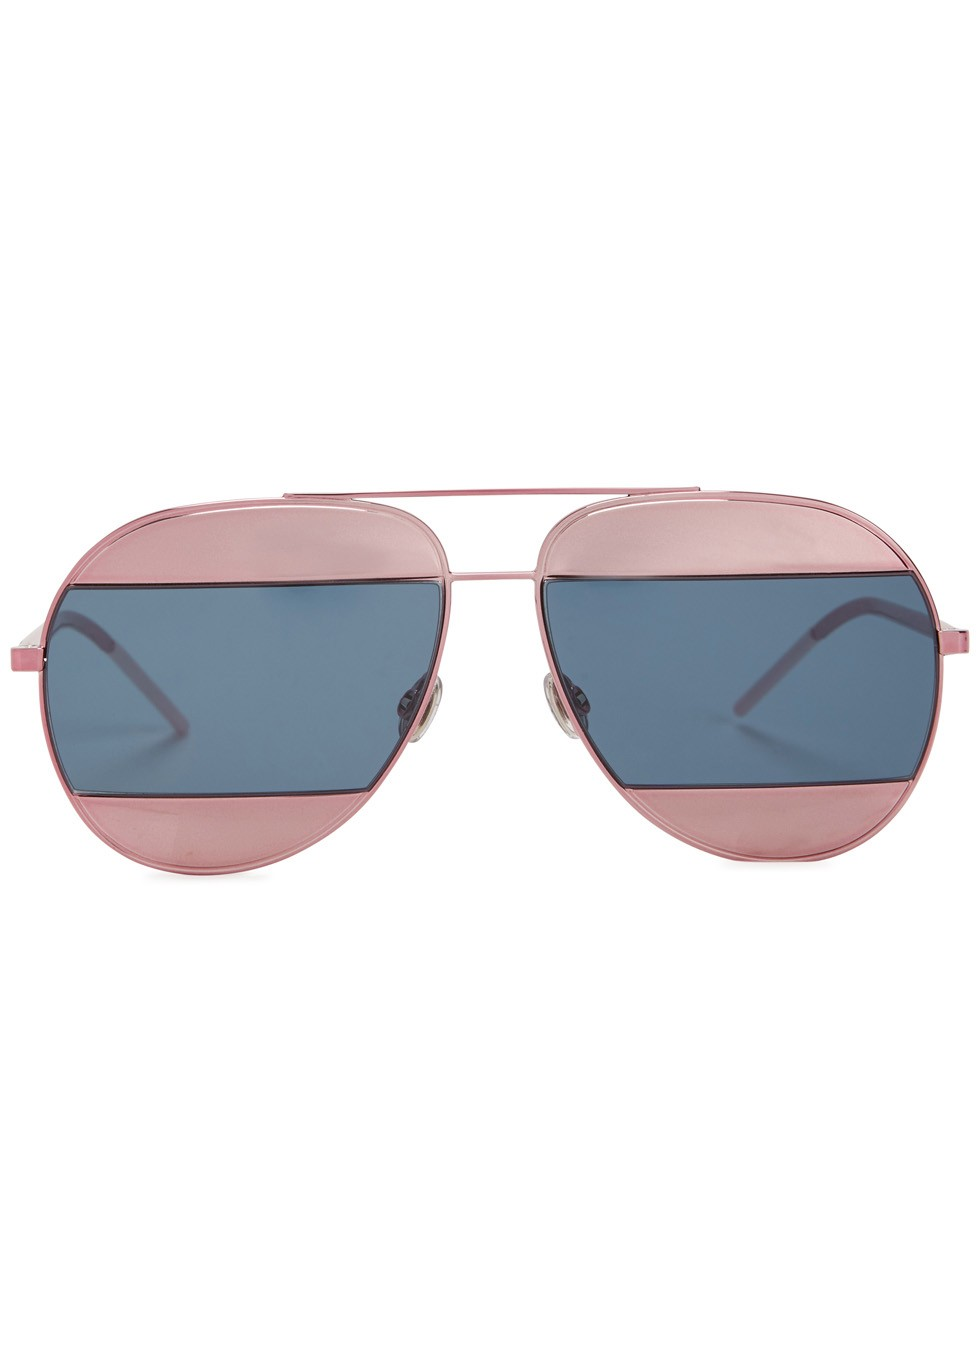 Christian Dior two-tone aviator sunglasses, £379